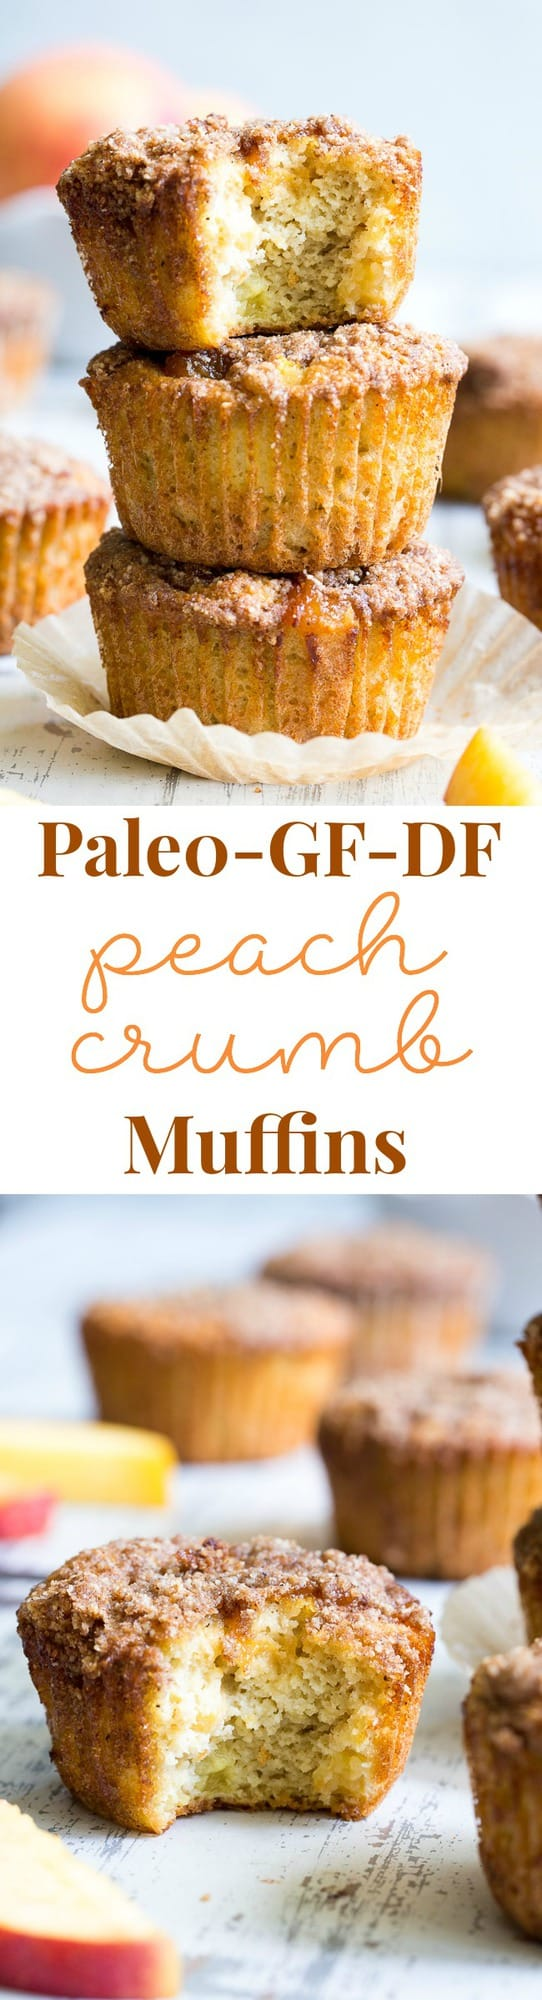 These Paleo peach muffins have double the peaches for tons of sweet summer flavor!  Easy peach preserves and chopped fresh peaches are mixed into a grain and dairy free muffin batter and topped with the perfect crumble.  Kid approved and great for summer snacking.